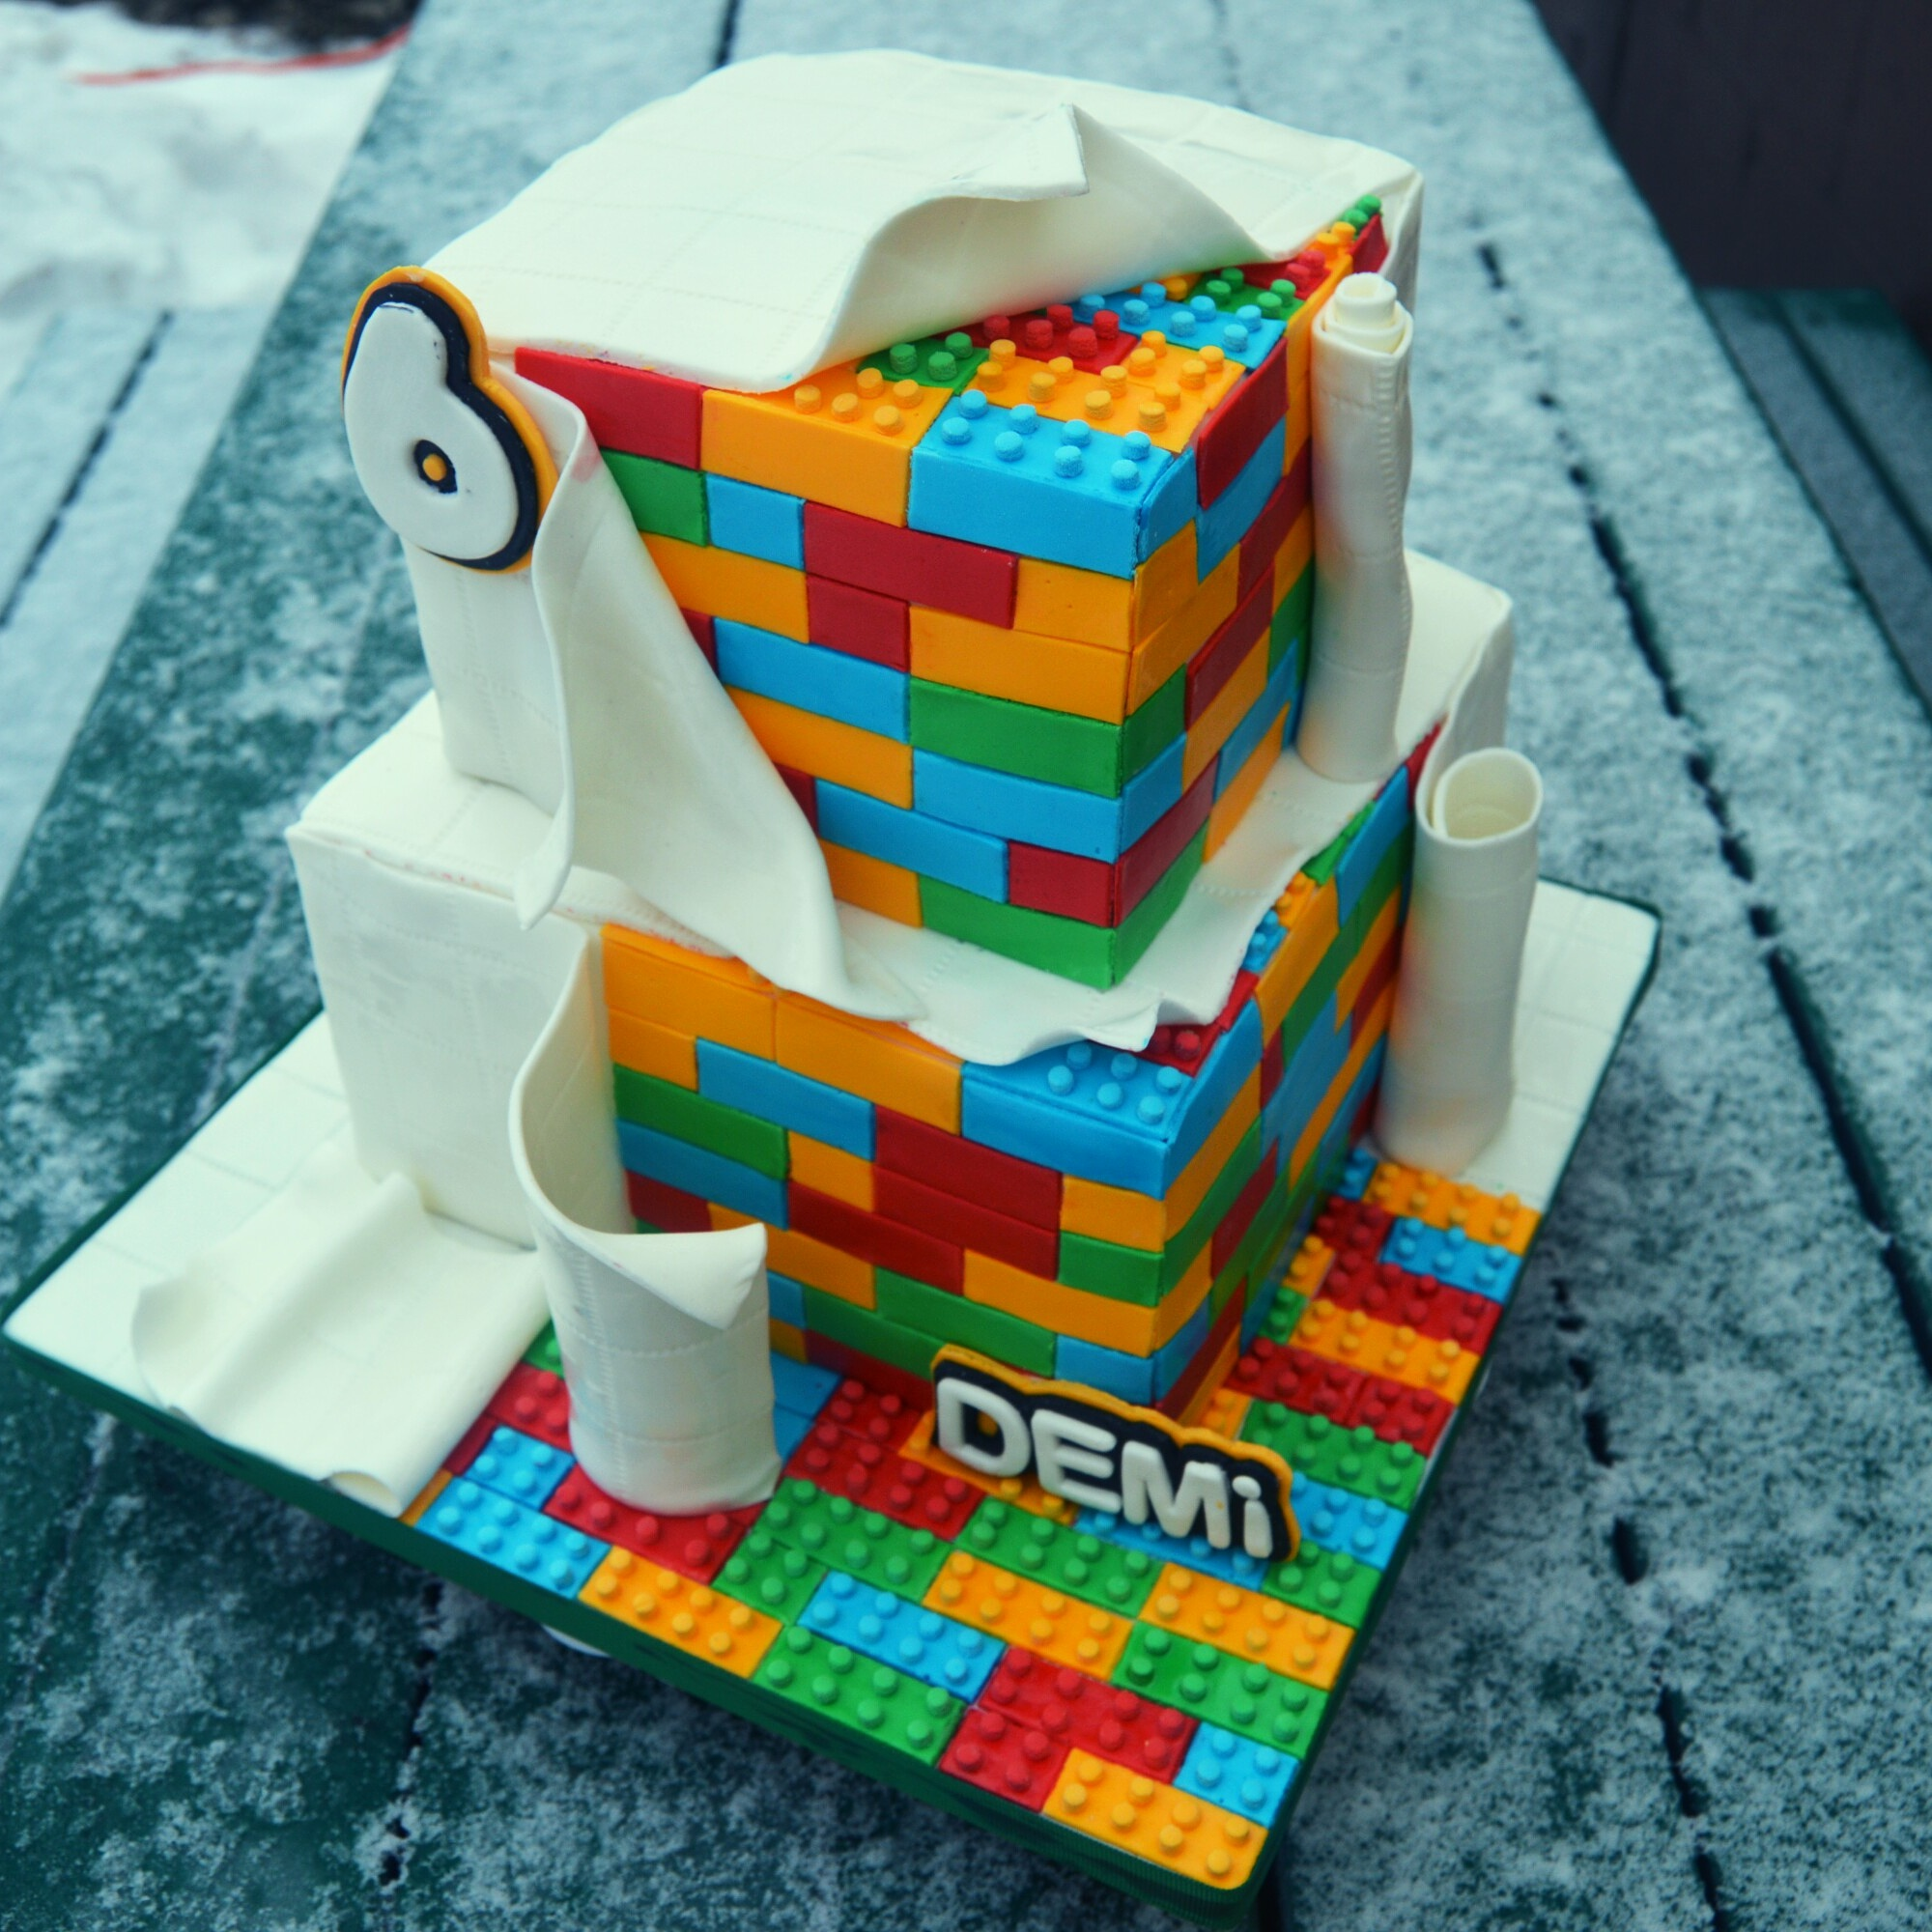 Lego Blocks Cake Design : The Making of a Lego Cake Grated Nutmeg